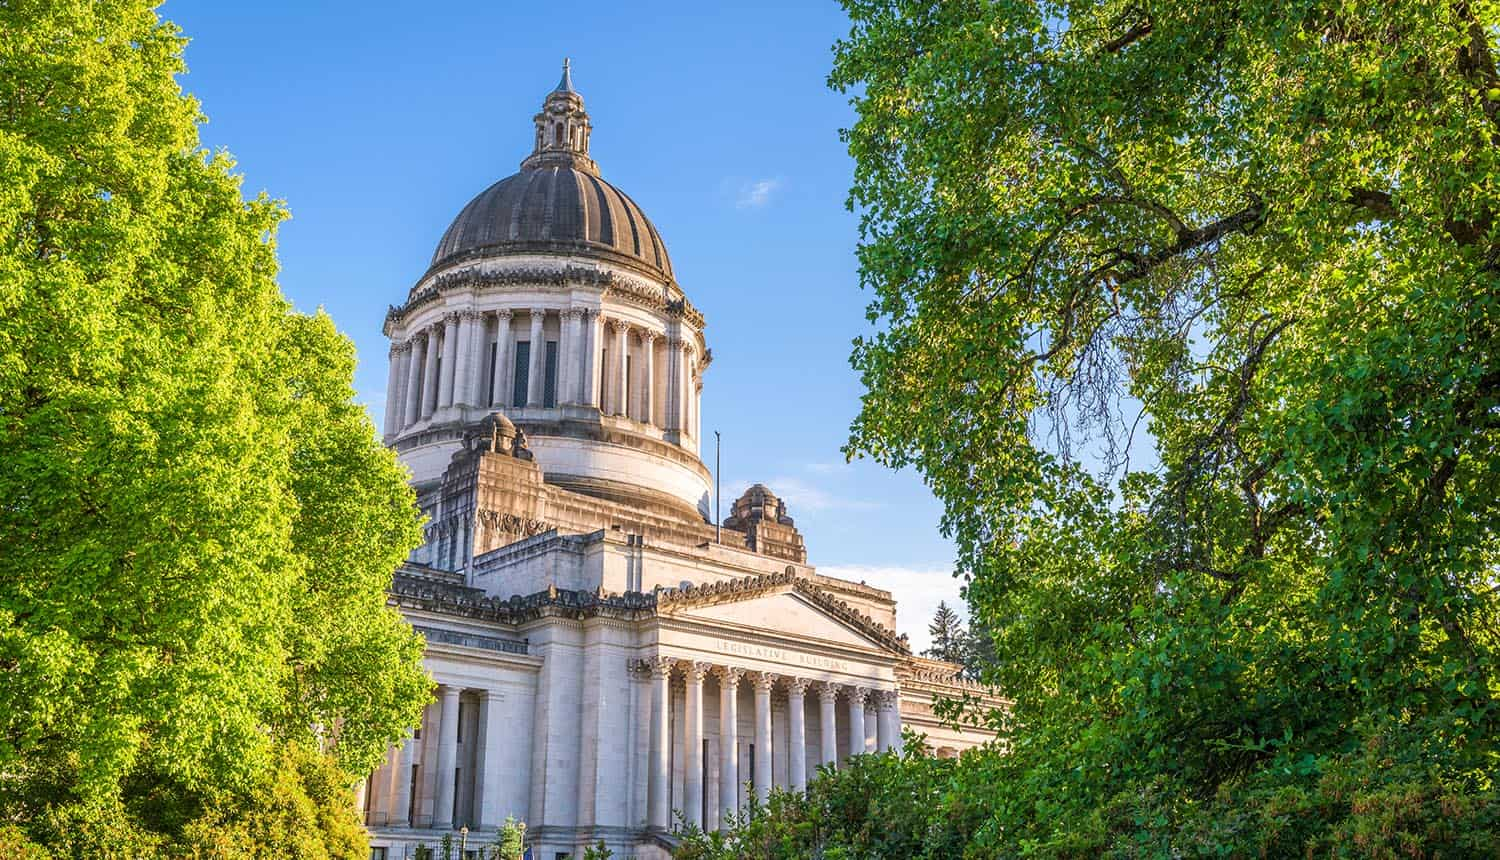 State Capitol building in Washington showing the new law in Washington state that limits the use of facial recognition technology